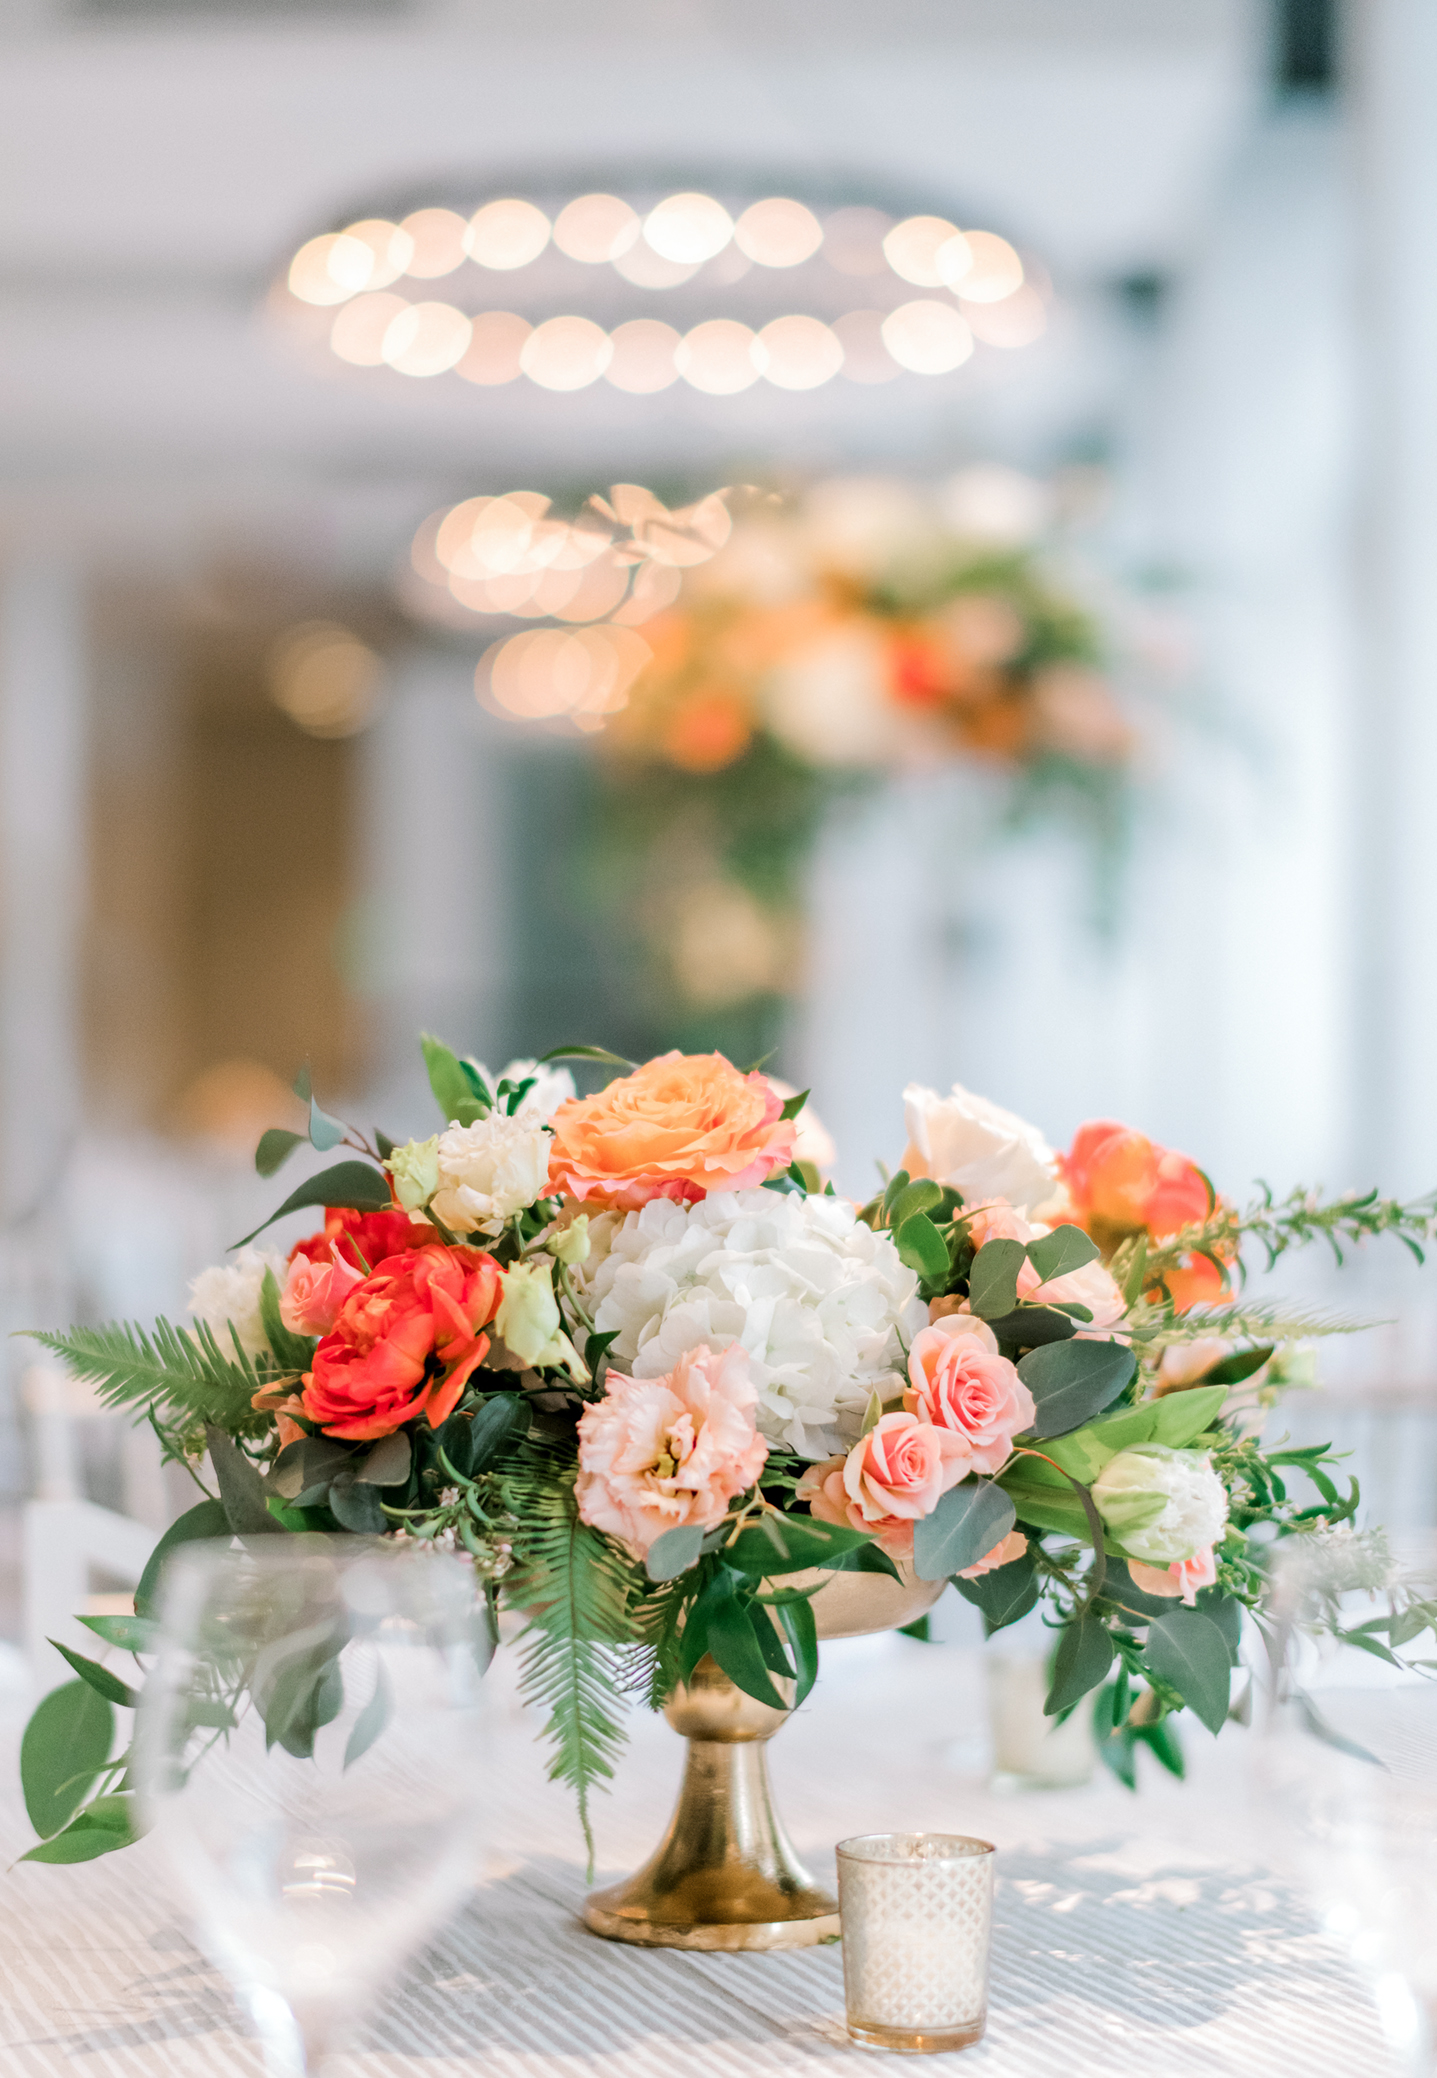 Low centerpiece in a soft natural style with a pretty mix of spring flowers in pastel blush, peach, and white, accented by bright orange tulips.